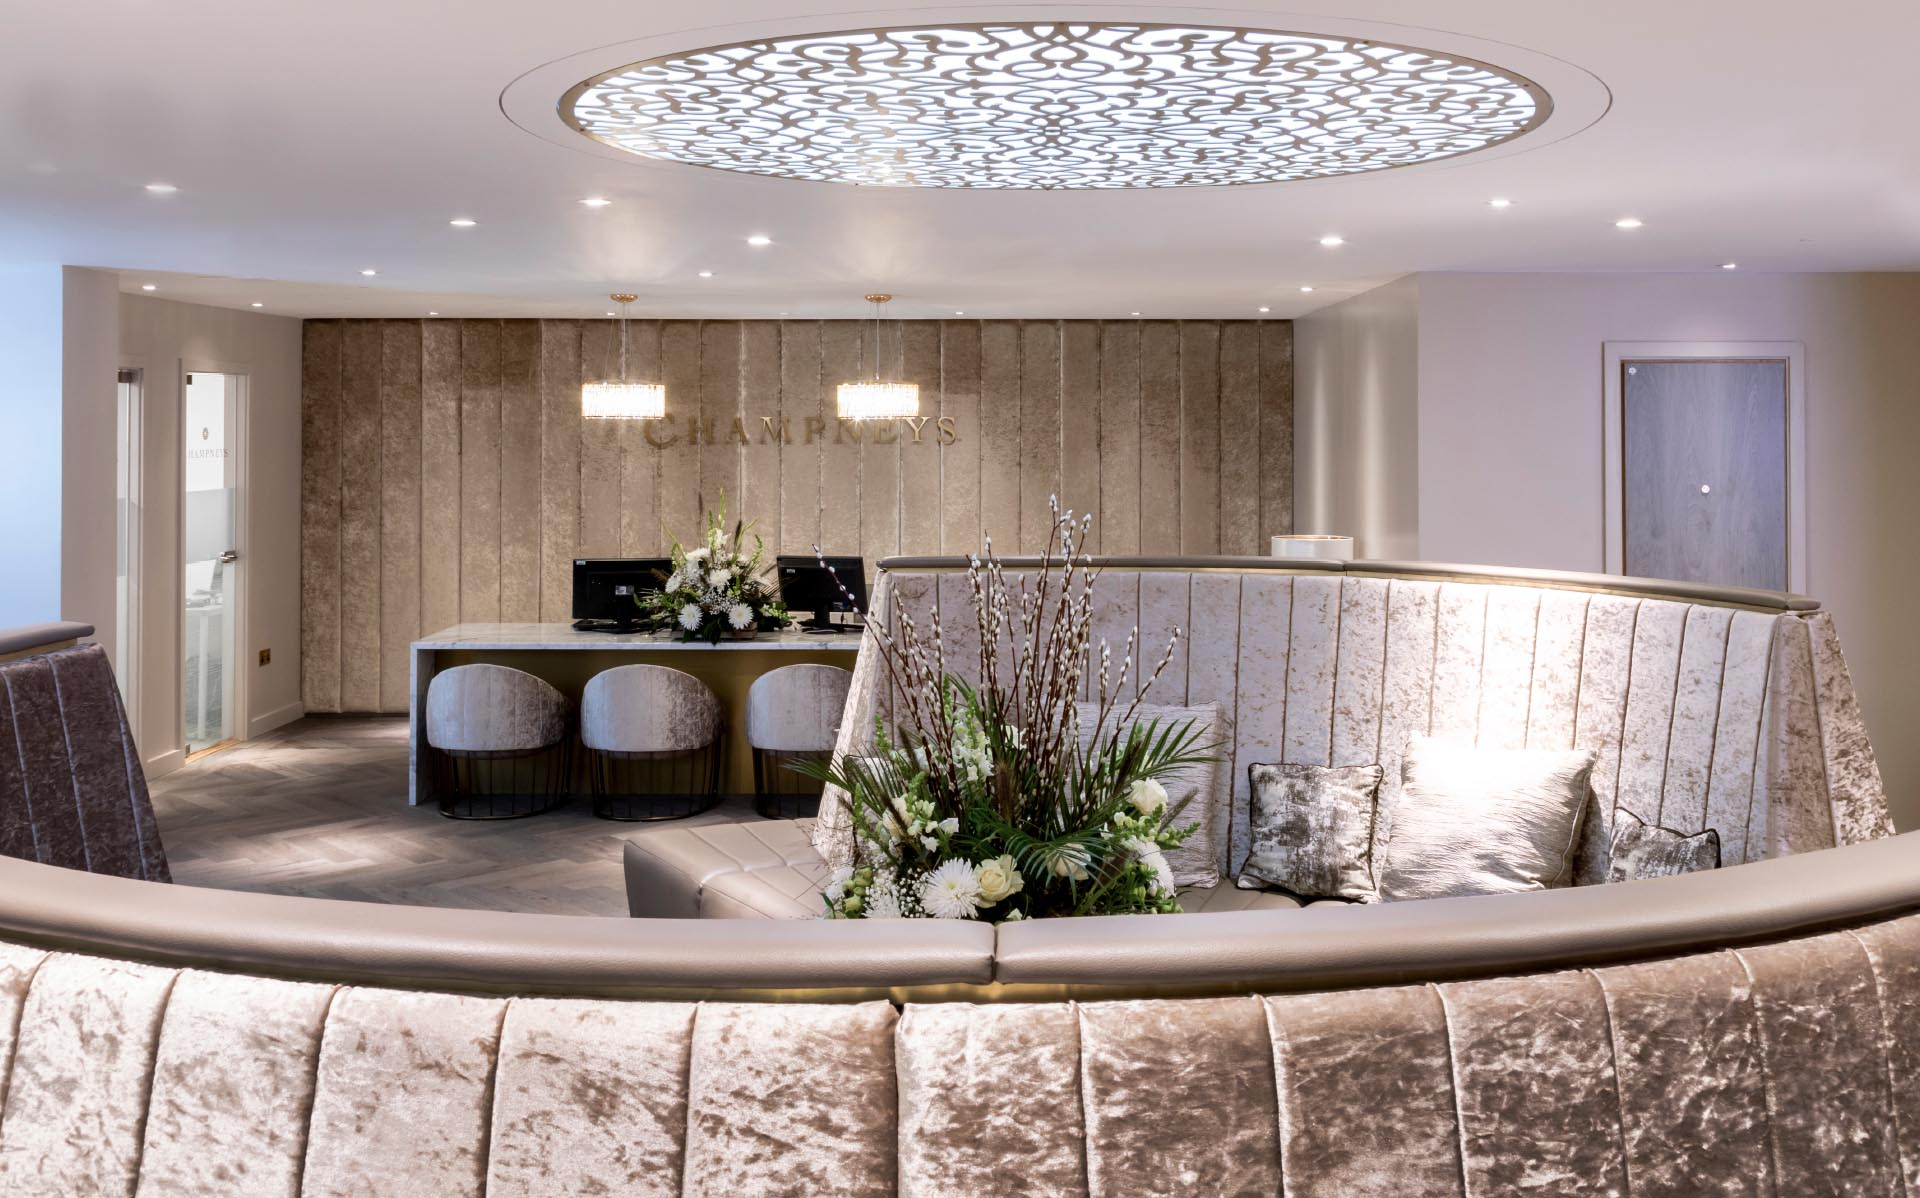 Champneys-Henlow-Butterscotch-design-Spa-treatment-wait-area-gold